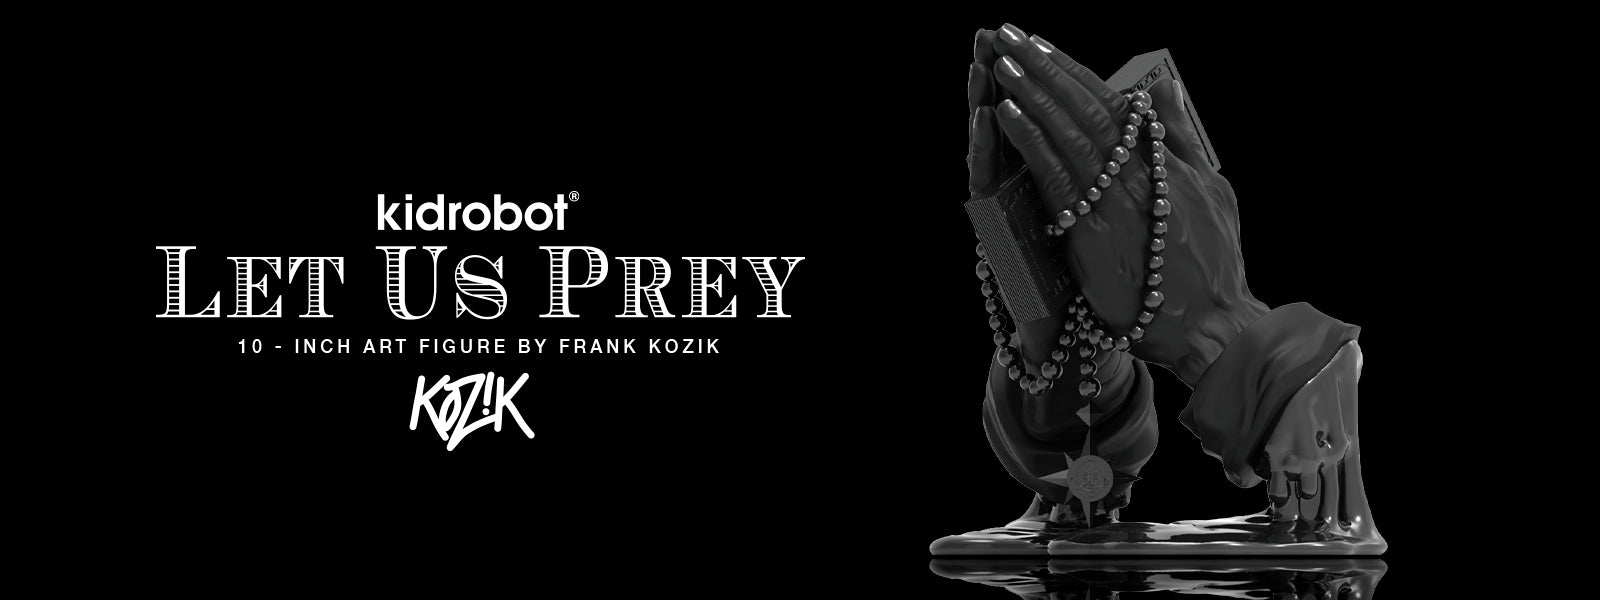 Kidrobot Let Us Prey by Frank Kozik